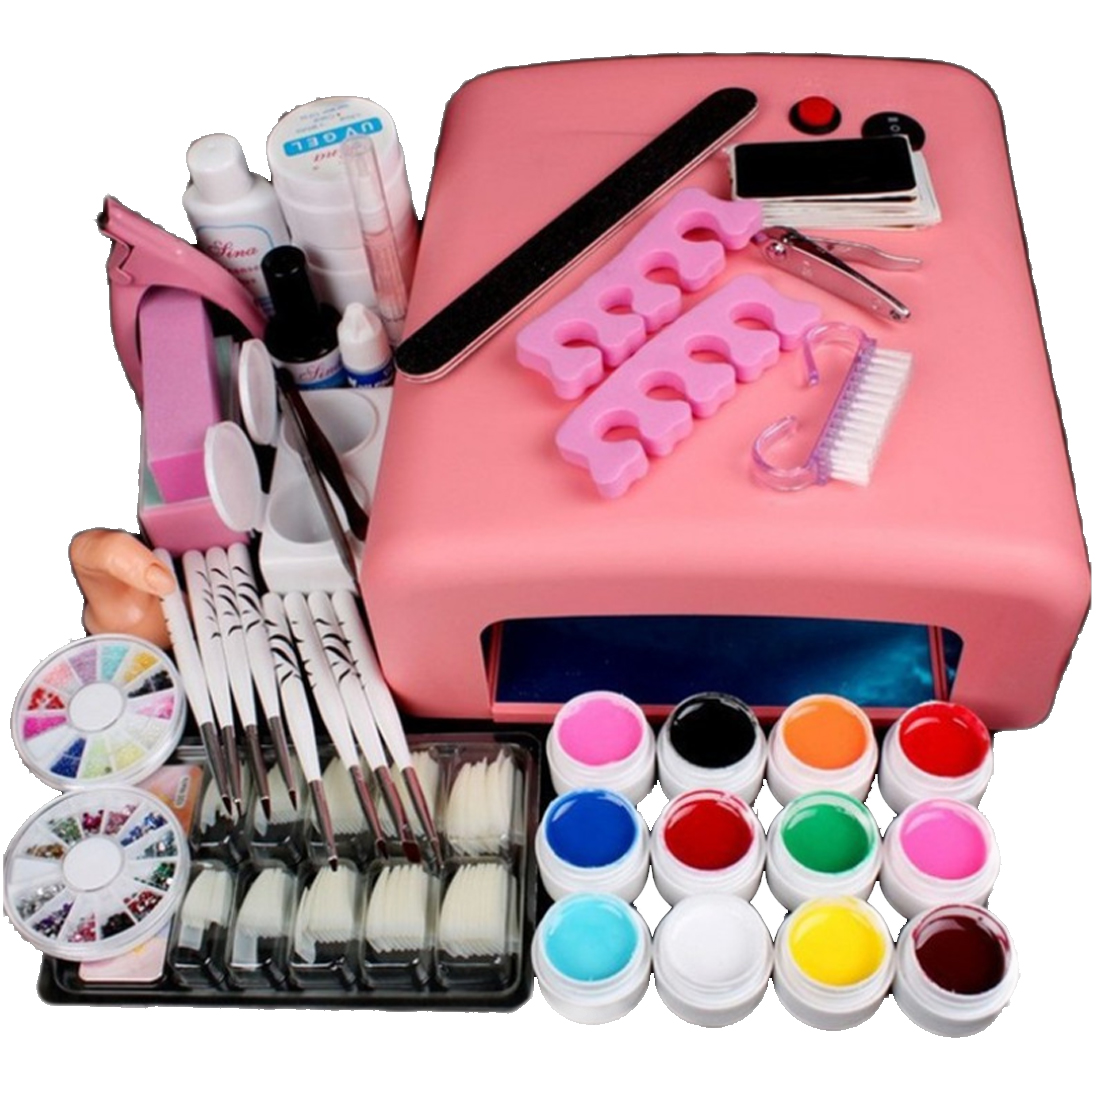 2017 Home Use 36W UV GEL White Lamp & 12 Color UV Gel Nail Art Tool Kits manicure set Be gift for Girl friend